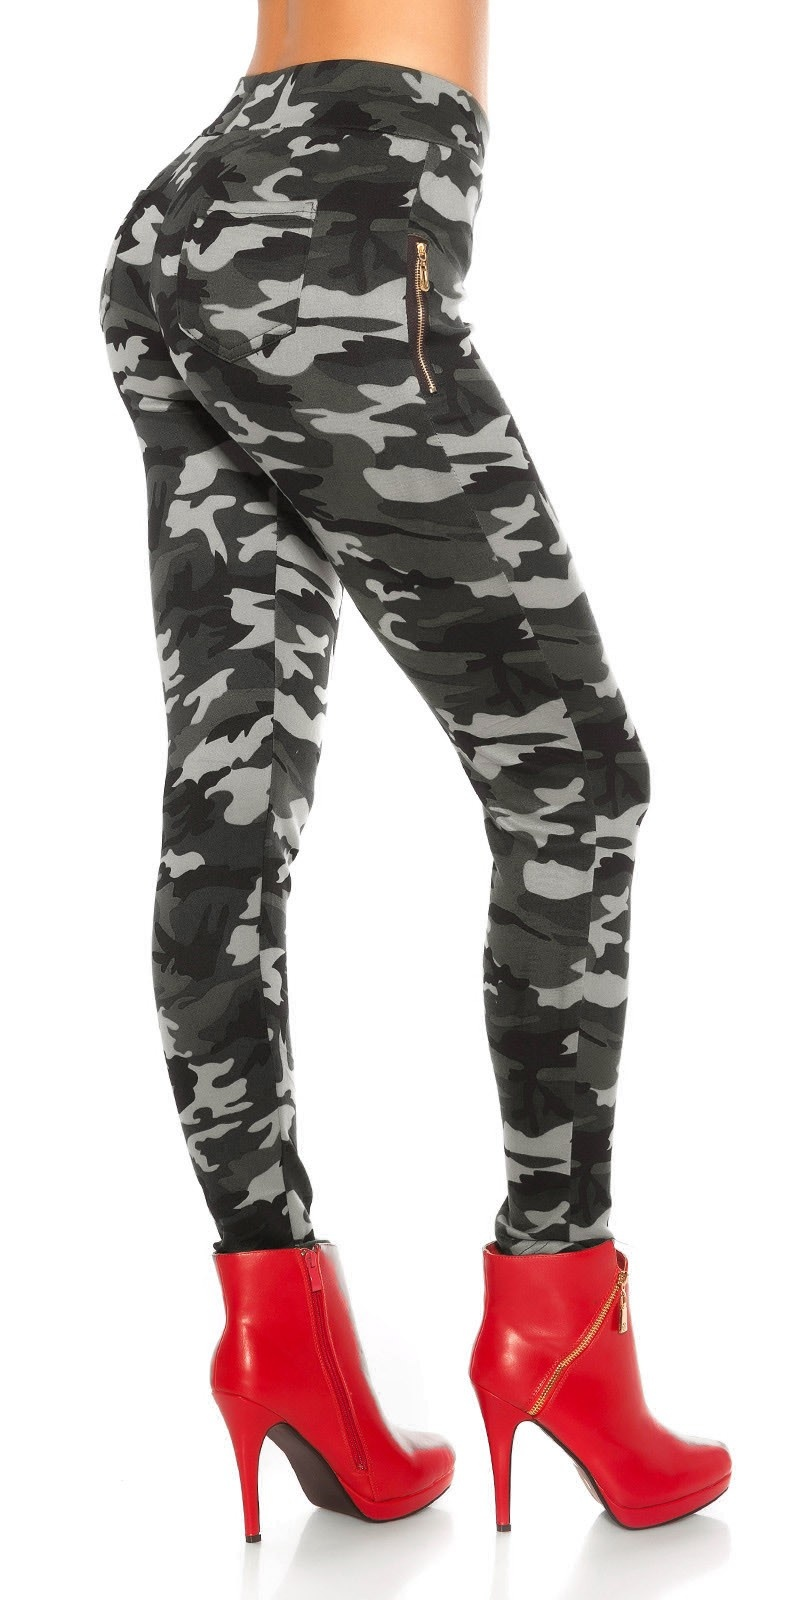 Sexy Leggings in Camouflage lined Grey